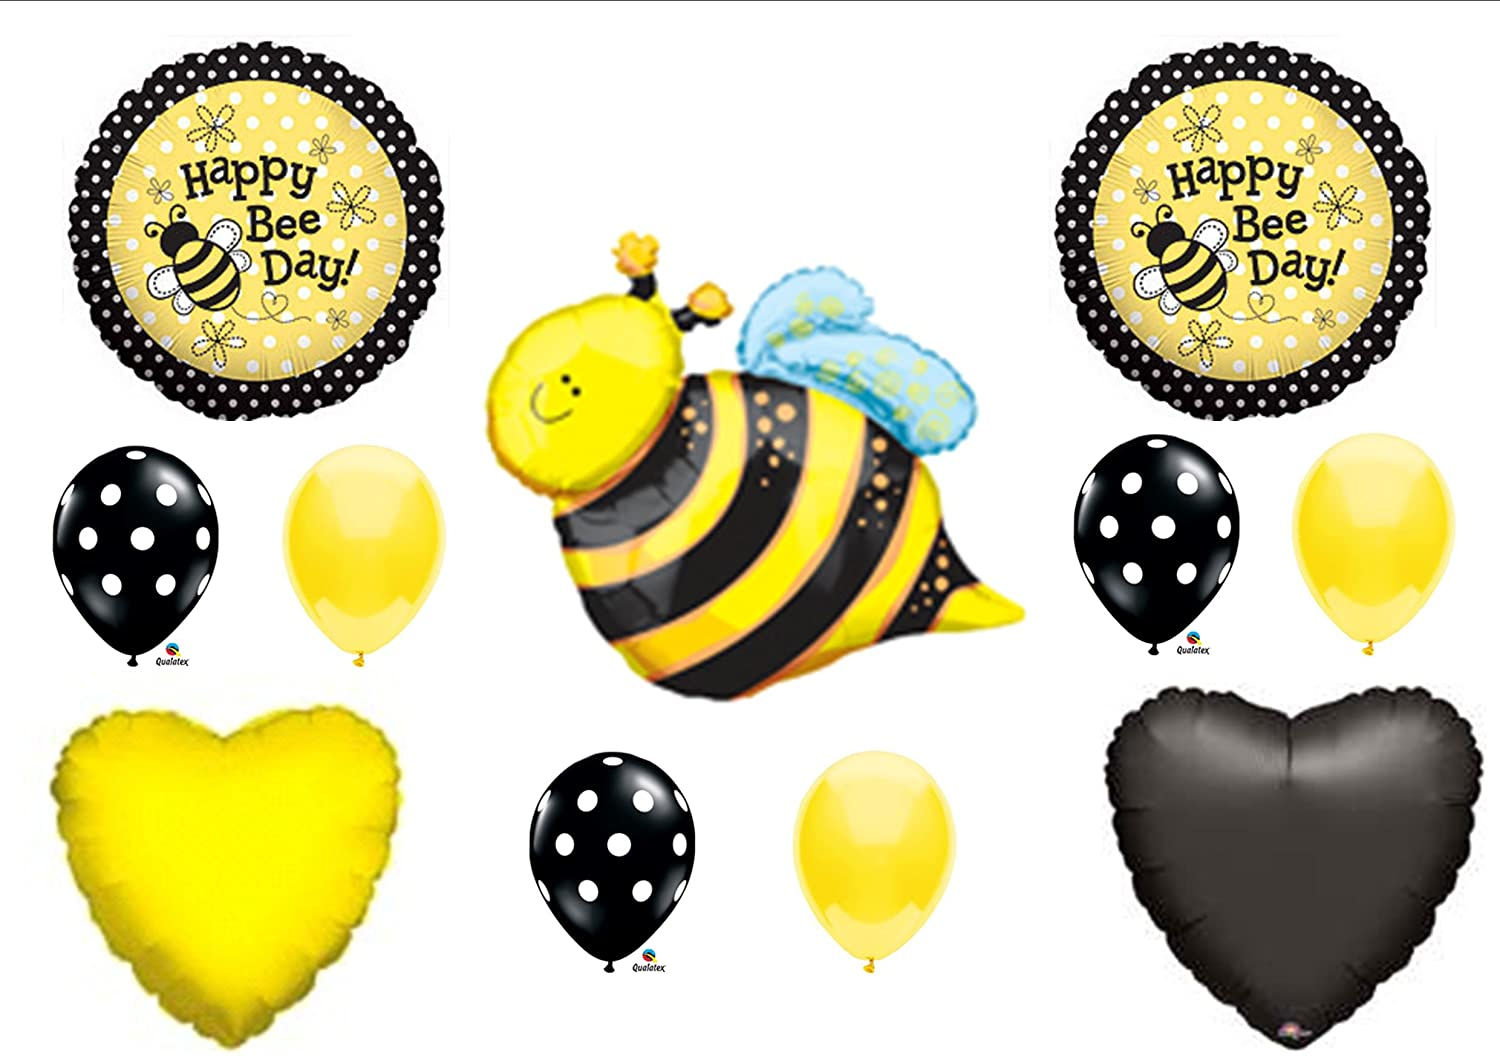 Amazon Happy Bee Day Bumblebee BIRTHDAY PARTY Balloons Decorations Supplies NEW By Anagram Toys Games